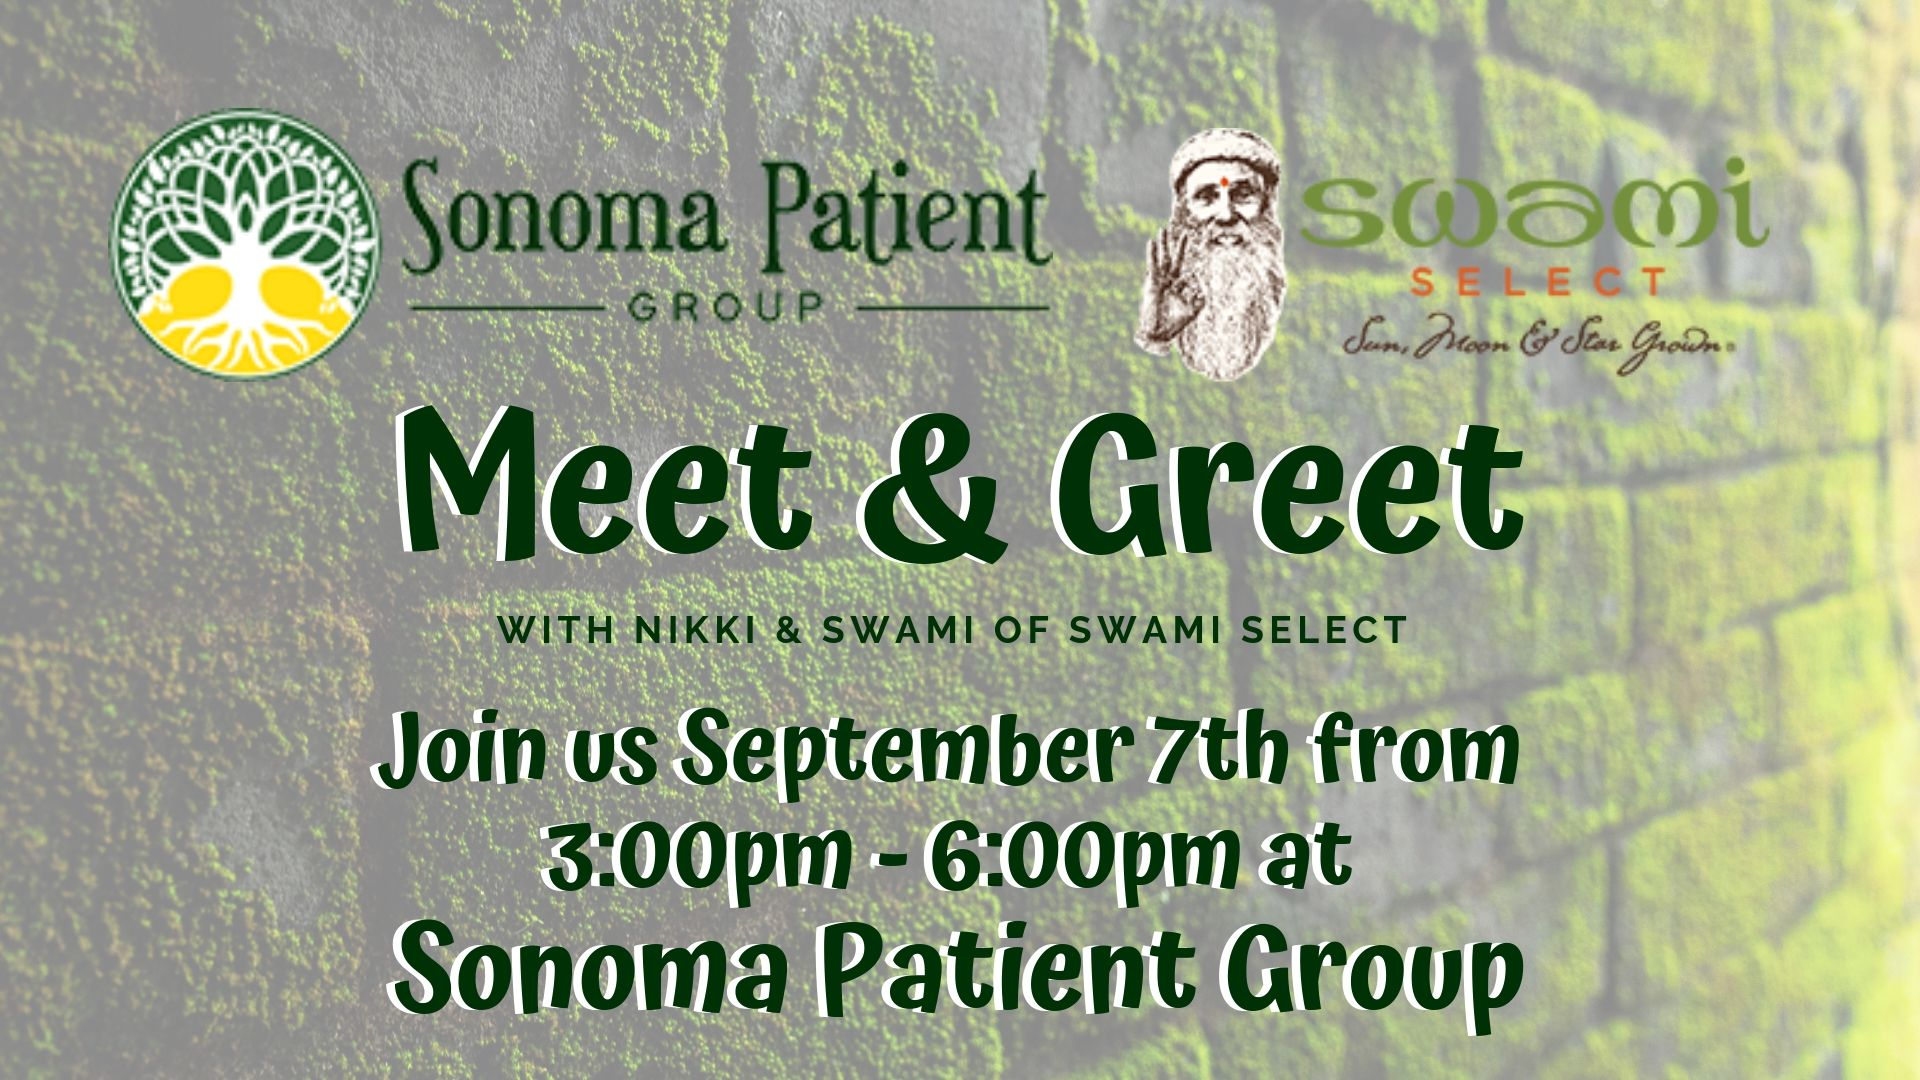 Swami Select In-Store Meet & Greet: Sonoma Patient Group